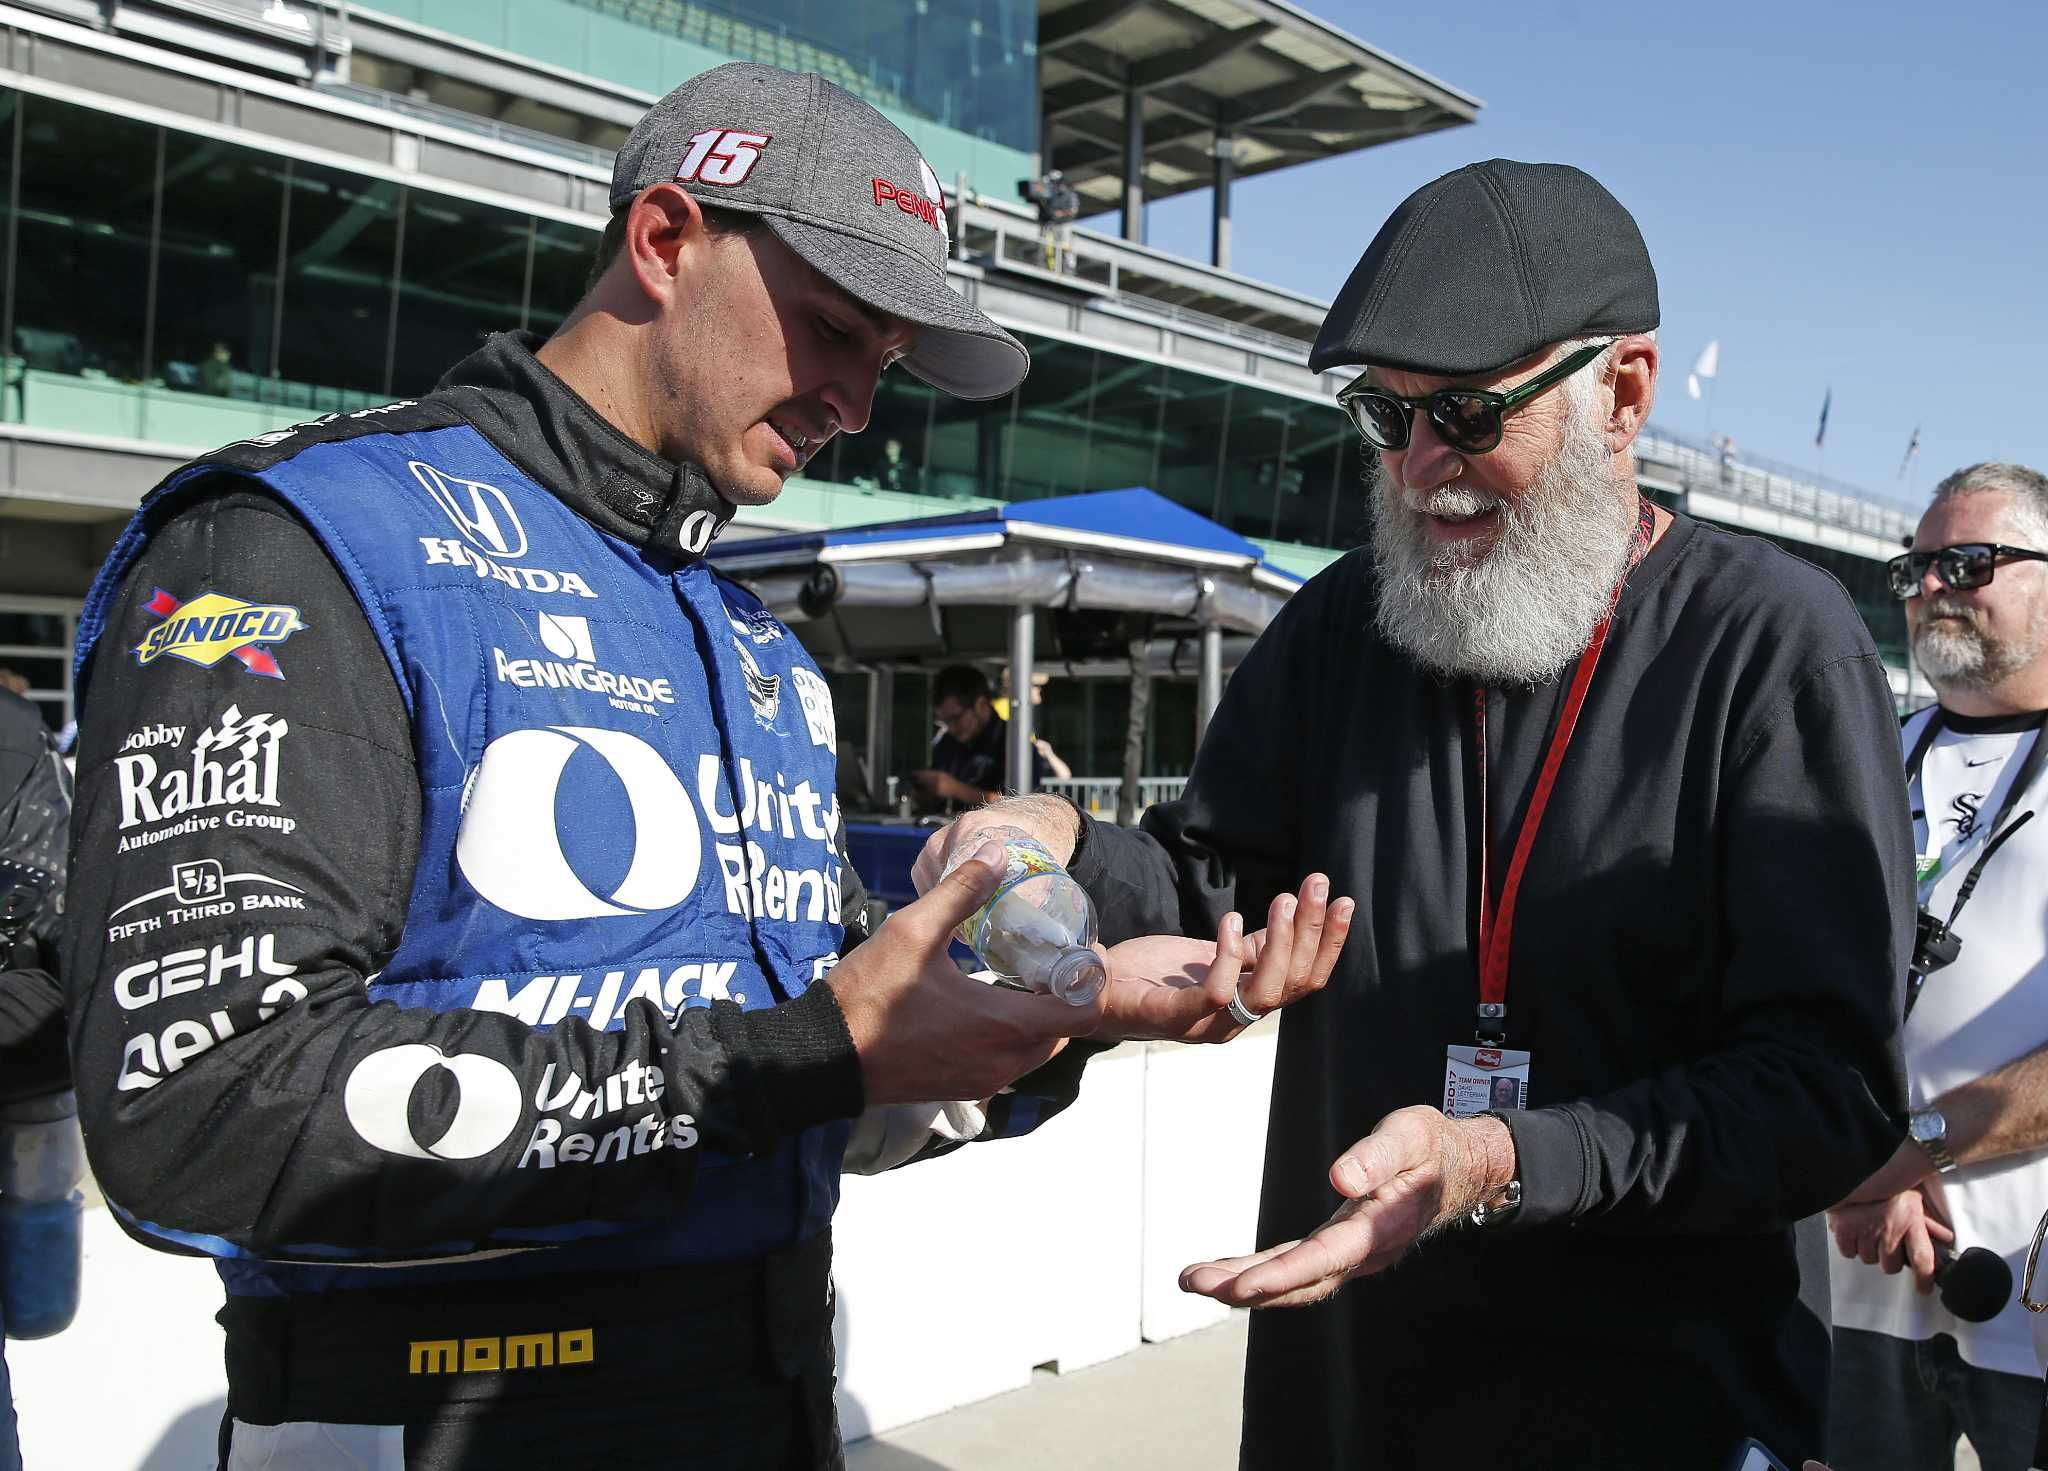 IndyCar teams turn attention to preparing for Indy 500. Graham Rahal, left, shows David Letterman the blisters on his hand following the Grand Prix of Indianapolis IndyCar auto race at Indianapolis Motor Speedway, Saturday, May 13, 2017, in Indianapolis | The Intelligencer